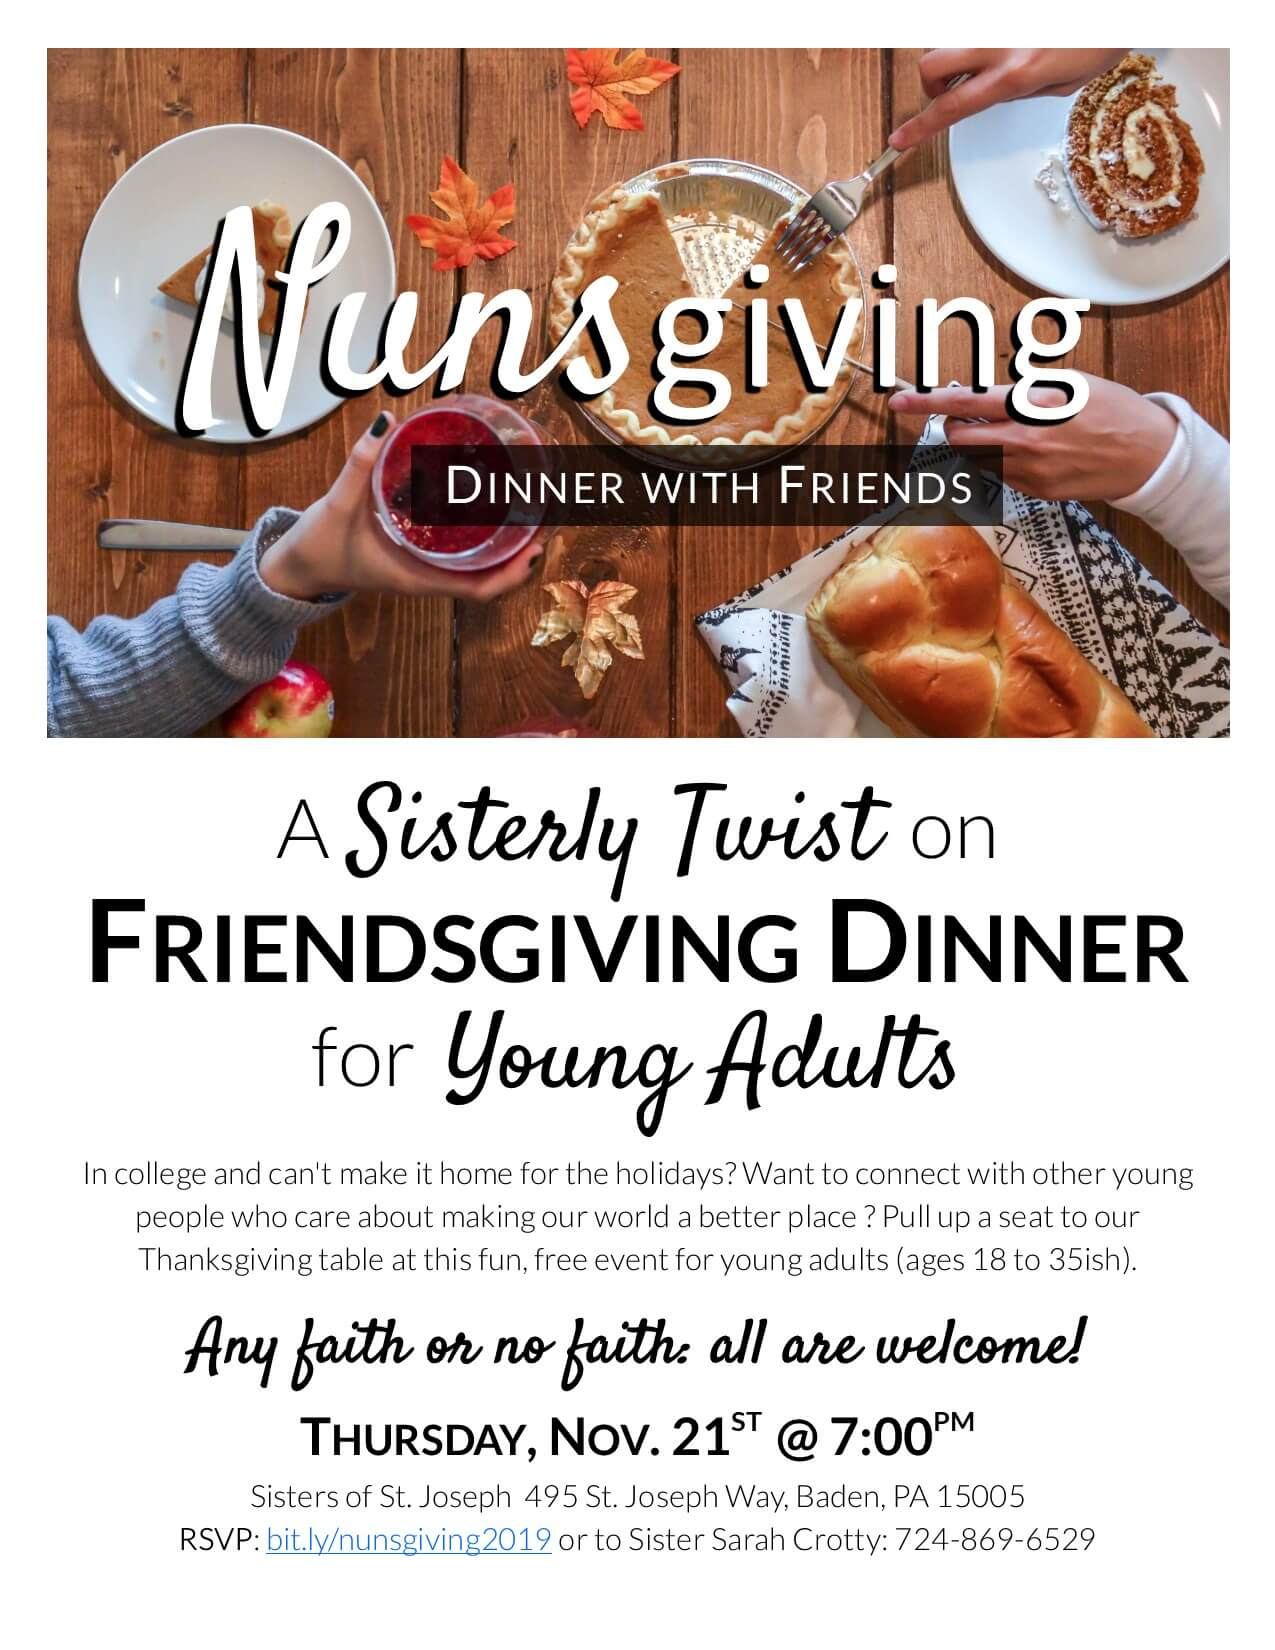 A flier advertising Nunsgiving: A Sisterly Twist on Friendsgiving Dinner for Young Adults. Date: Thursday, Nov. 21st at 7:00pm. Event description: In college and can't make it home for the holidays? Want to connect with other young people who care about making our world a better place for all of us? Pull up a seat to our Thanksgiving table at this fun, free event for young adults (ages 18 to 35ish). Any faith or no faith: all are welcome. RSVP at bit.ly/nunsgiving2019 or by calling Sister Sarah Crotty at 724-869-6529.